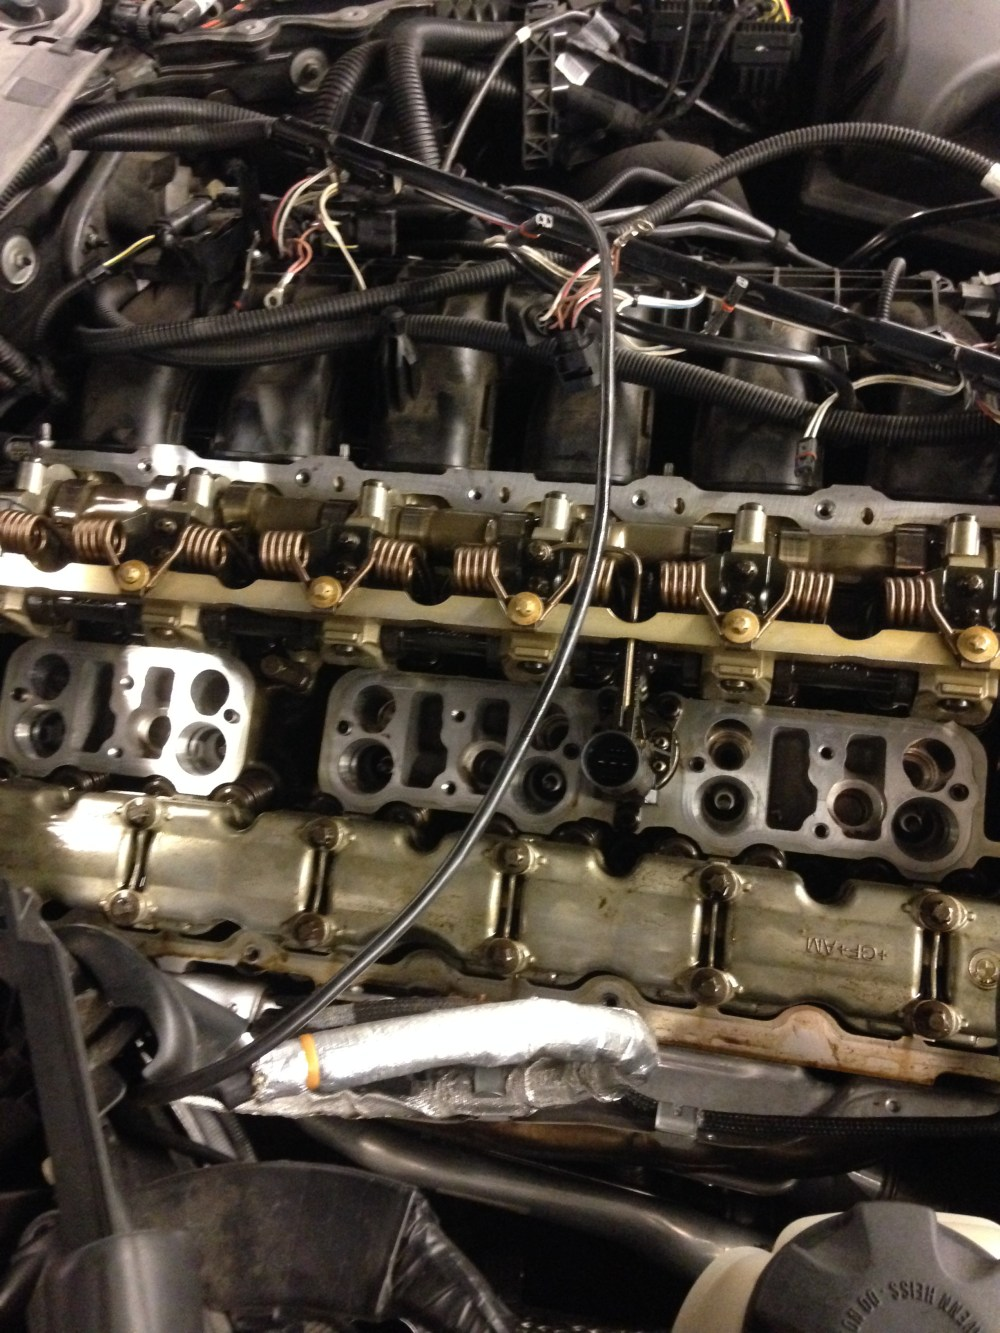 medium resolution of here you can see all the injector and spark plug stands removed